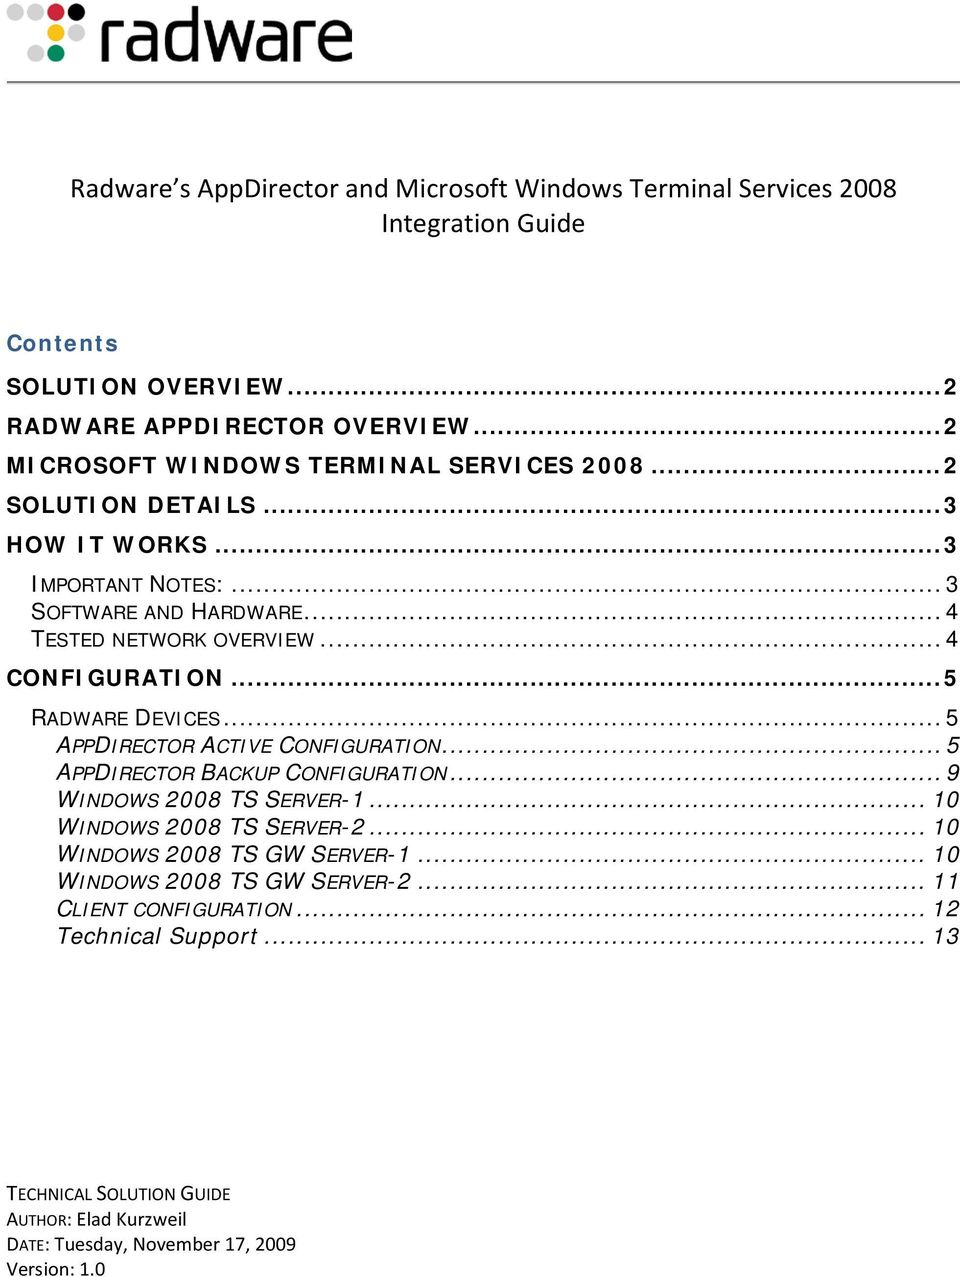 .. 4 CONFIGURATION... 5 RADWARE DEVICES... 5 APPDIRECTOR ACTIVE CONFIGURATION... 5 APPDIRECTOR BACKUP CONFIGURATION... 9 WINDOWS 2008 TS SERVER-1... 10 WINDOWS 2008 TS SERVER-2.